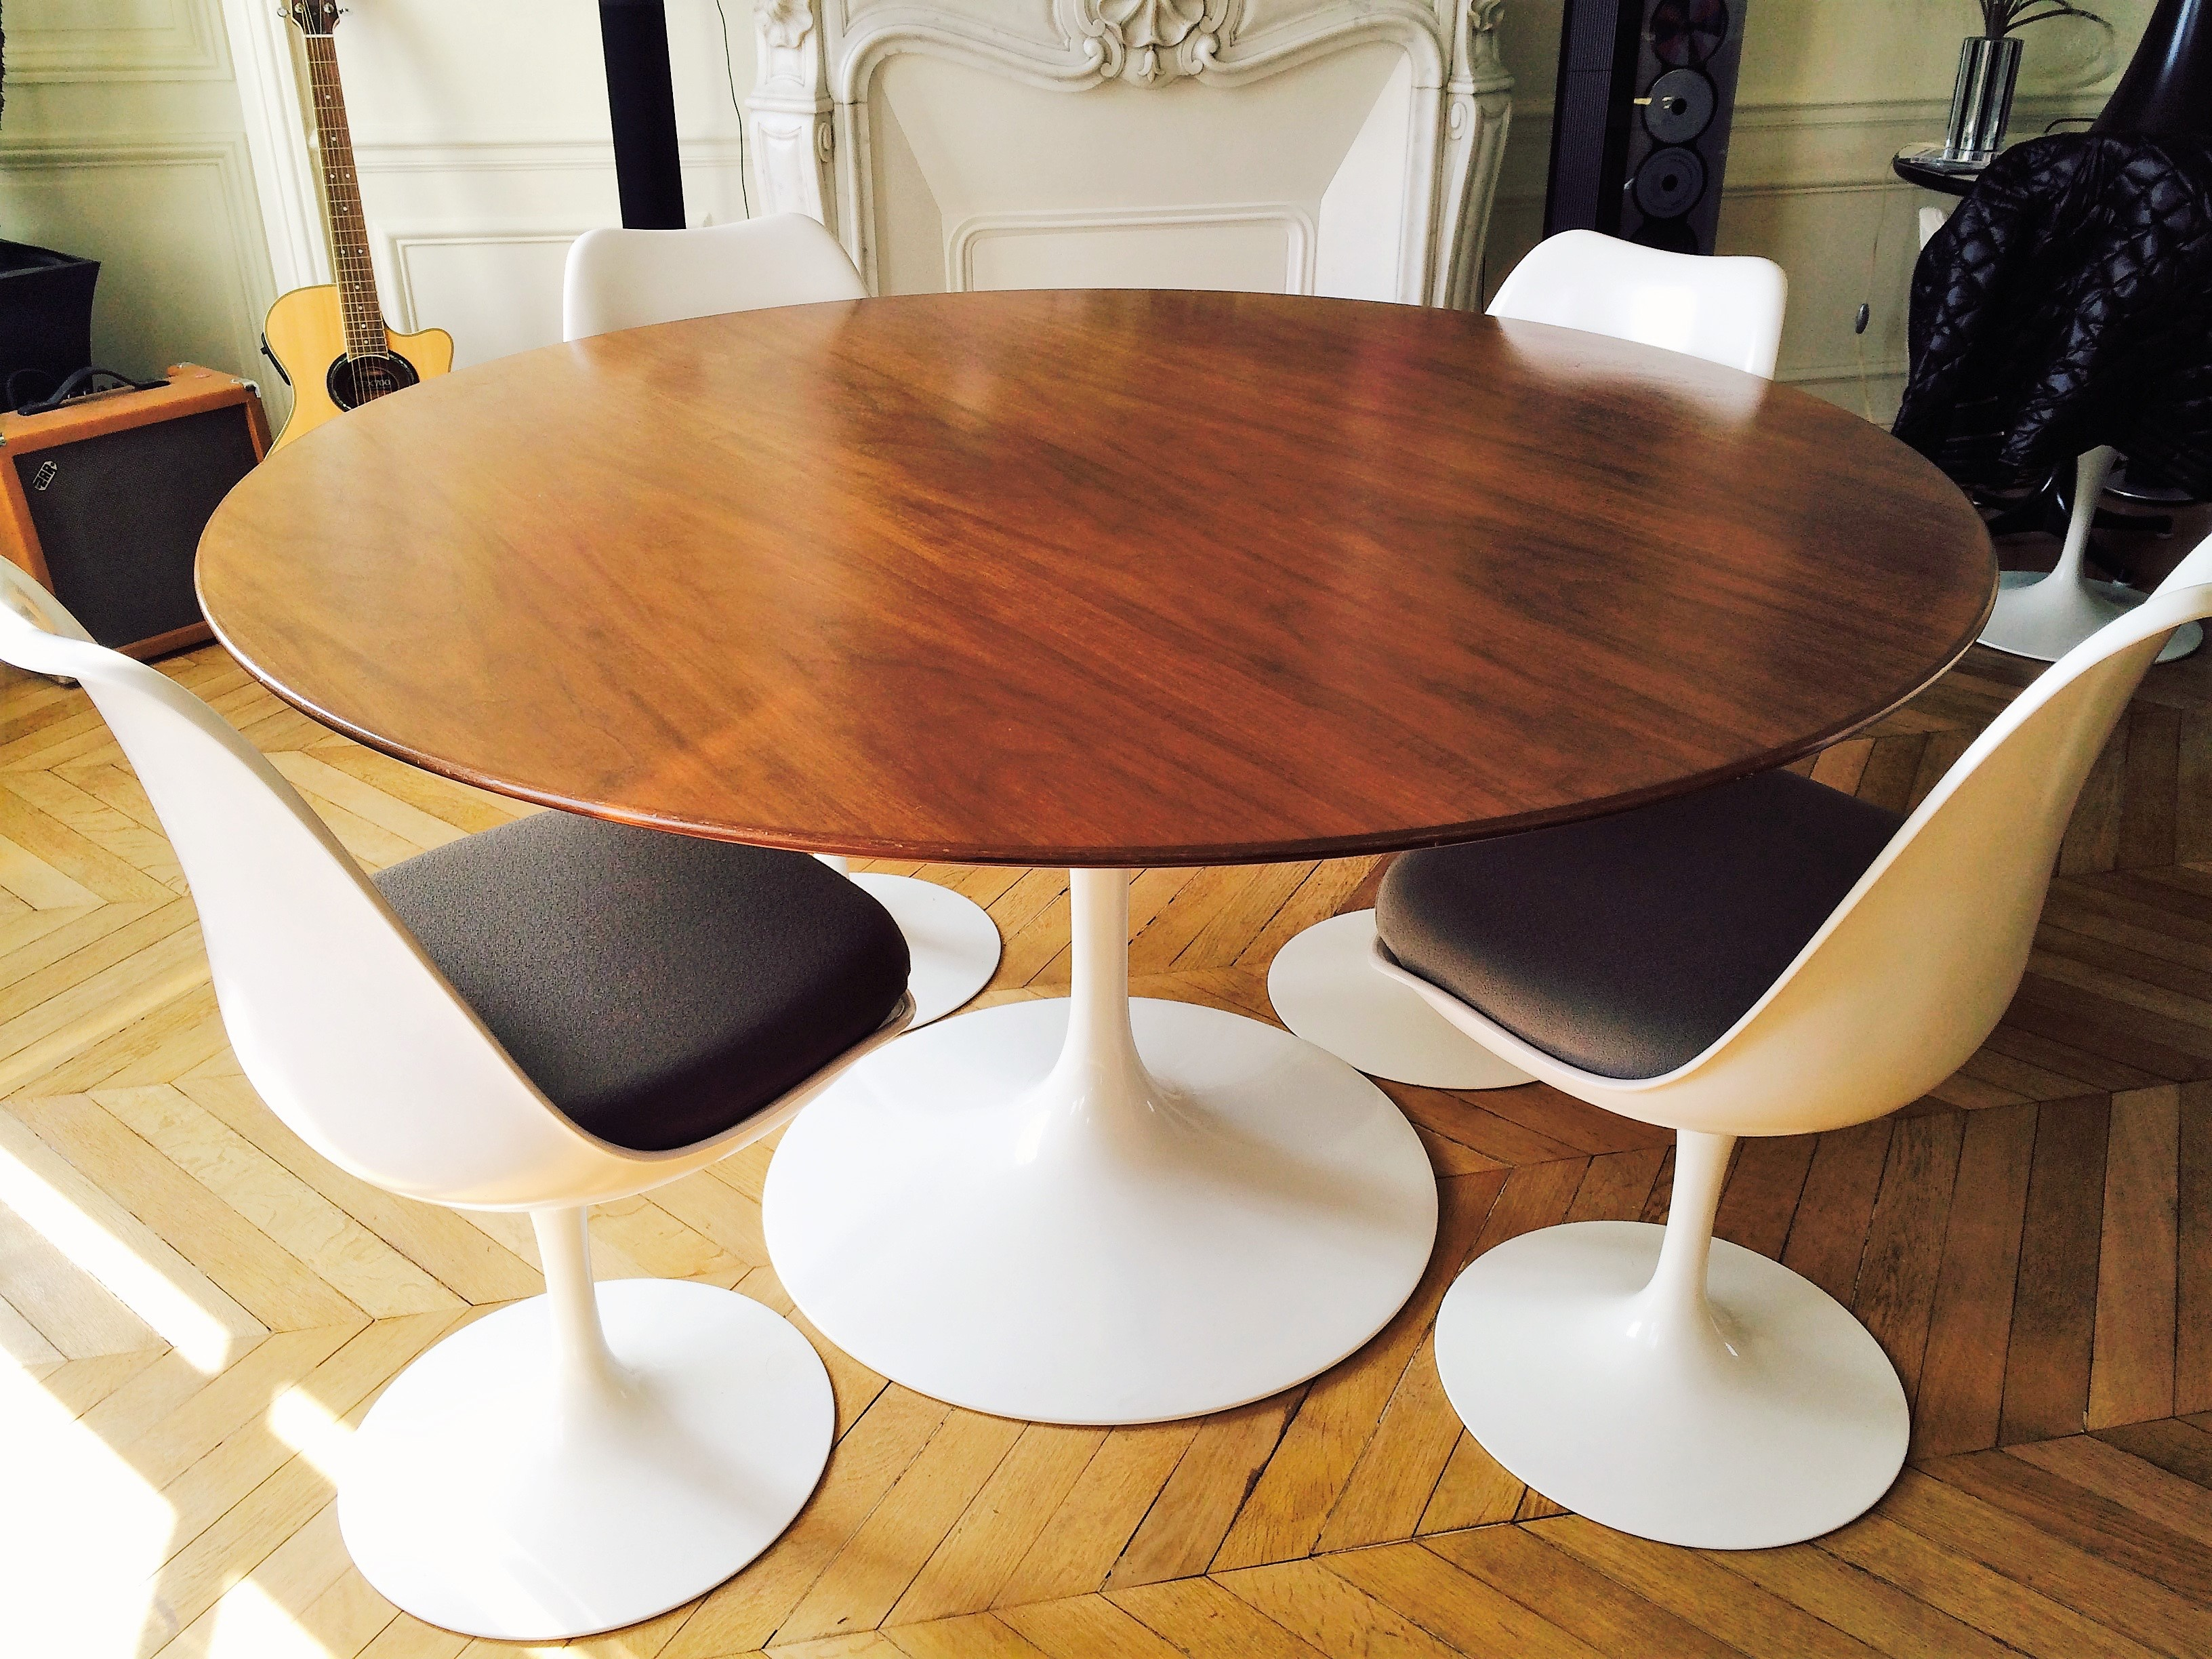 Table Tulipe Saarinen De Knoll En Noyer L 39 Atelier 50